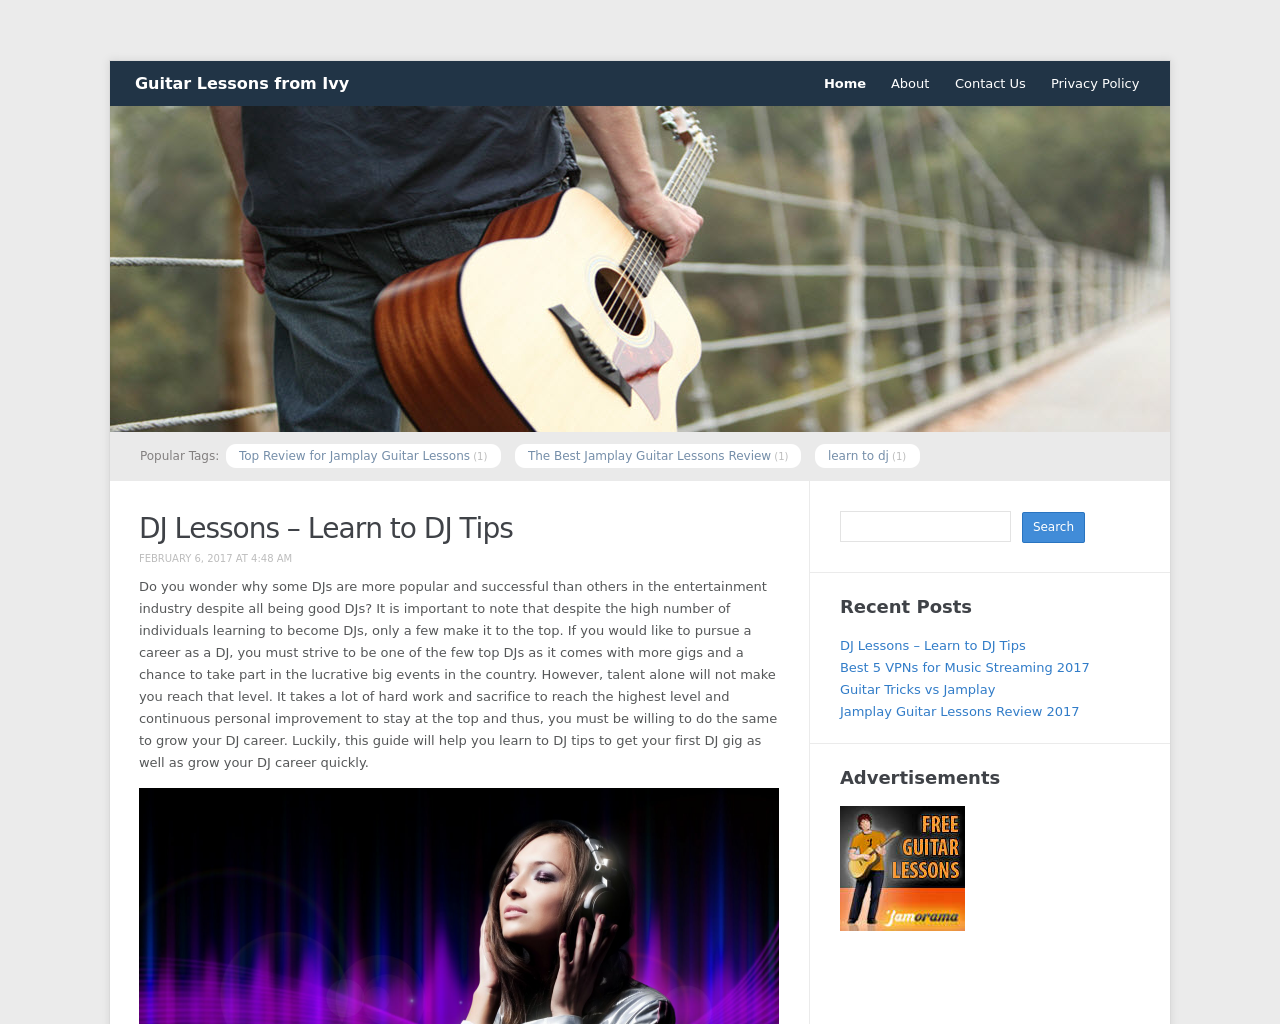 Lessons-From-Ivy-Advertising-Reviews-Pricing